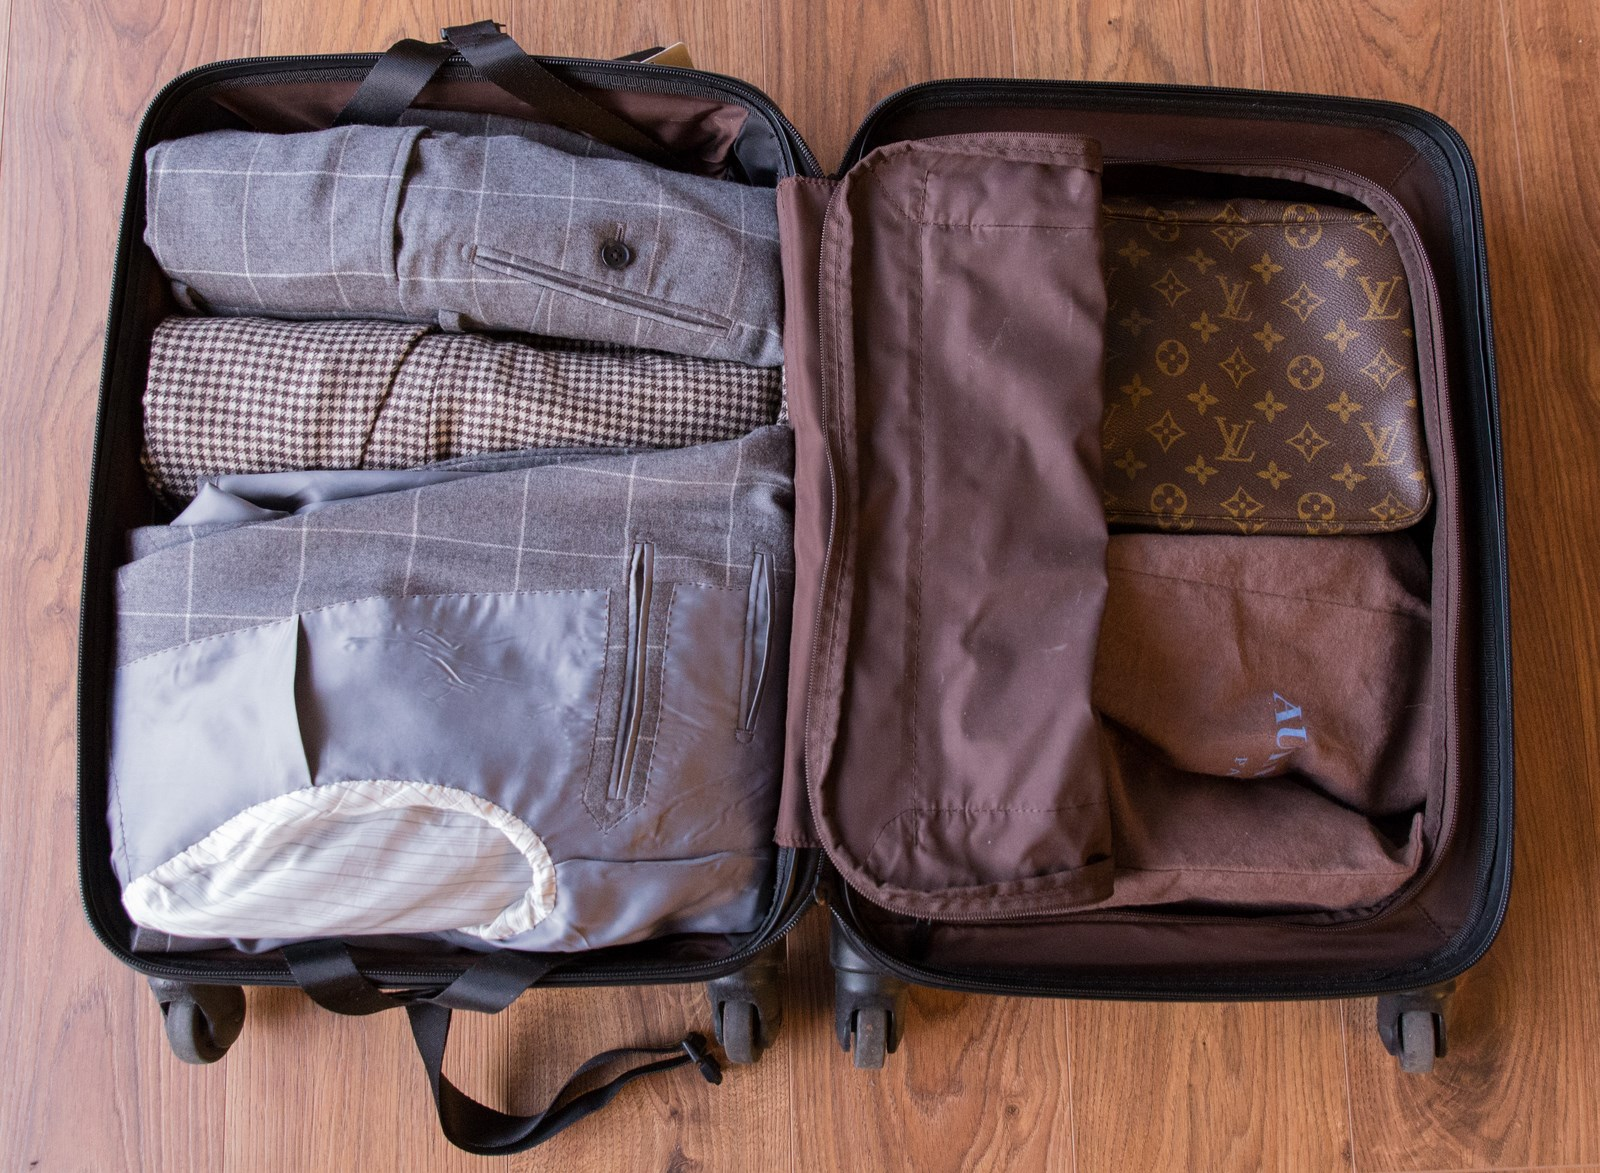 The Gentleman traveler PT 2 : Packing for a 3 day business trip